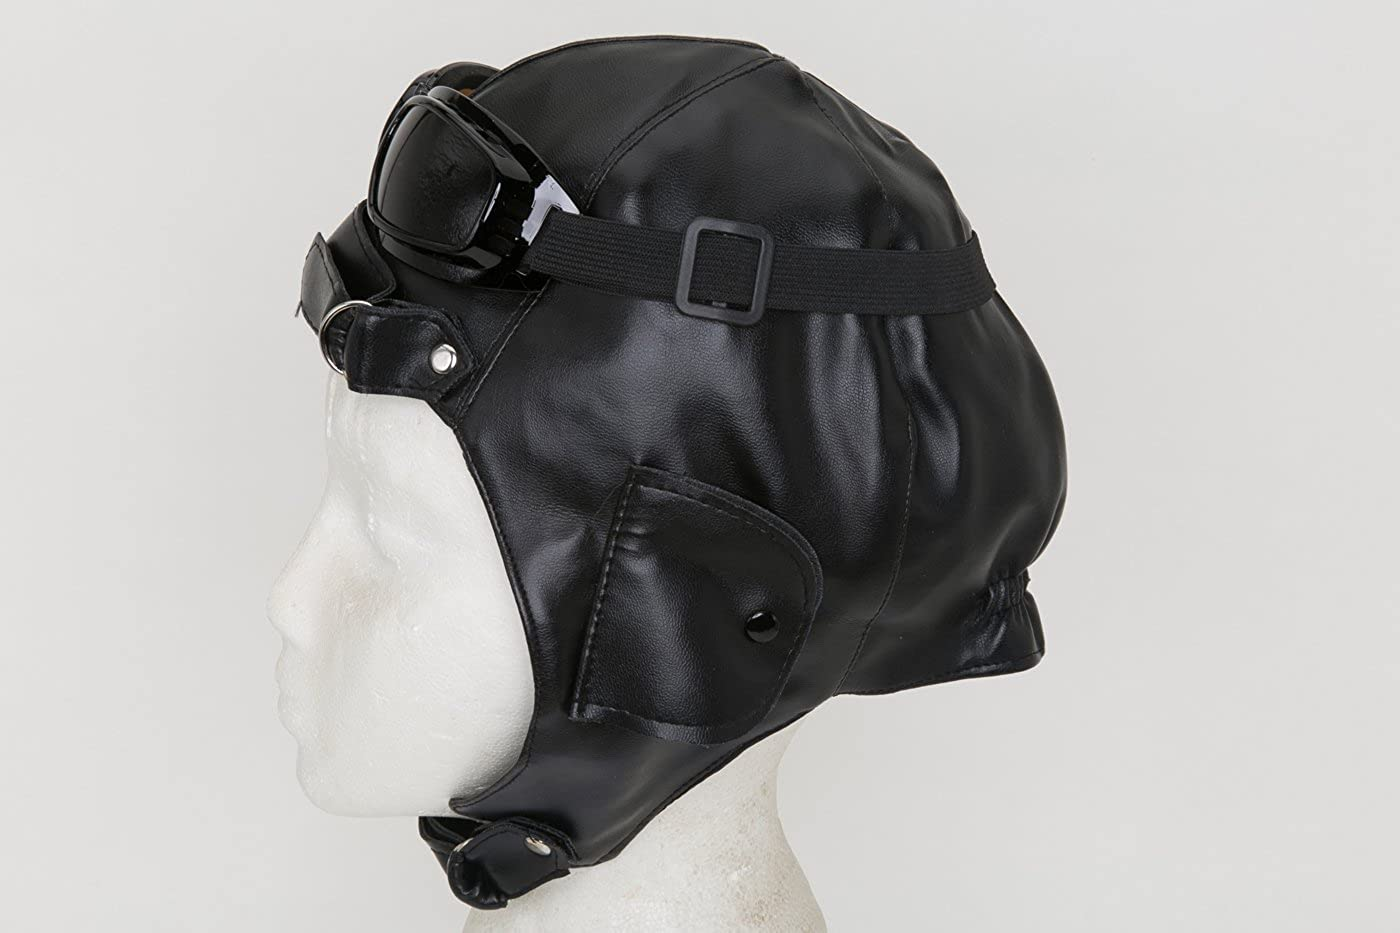 70f82ab7 Amazon.com: Jacobson Hat Company Men's Aviator Hat and Goggles, Black,  Adult: Clothing